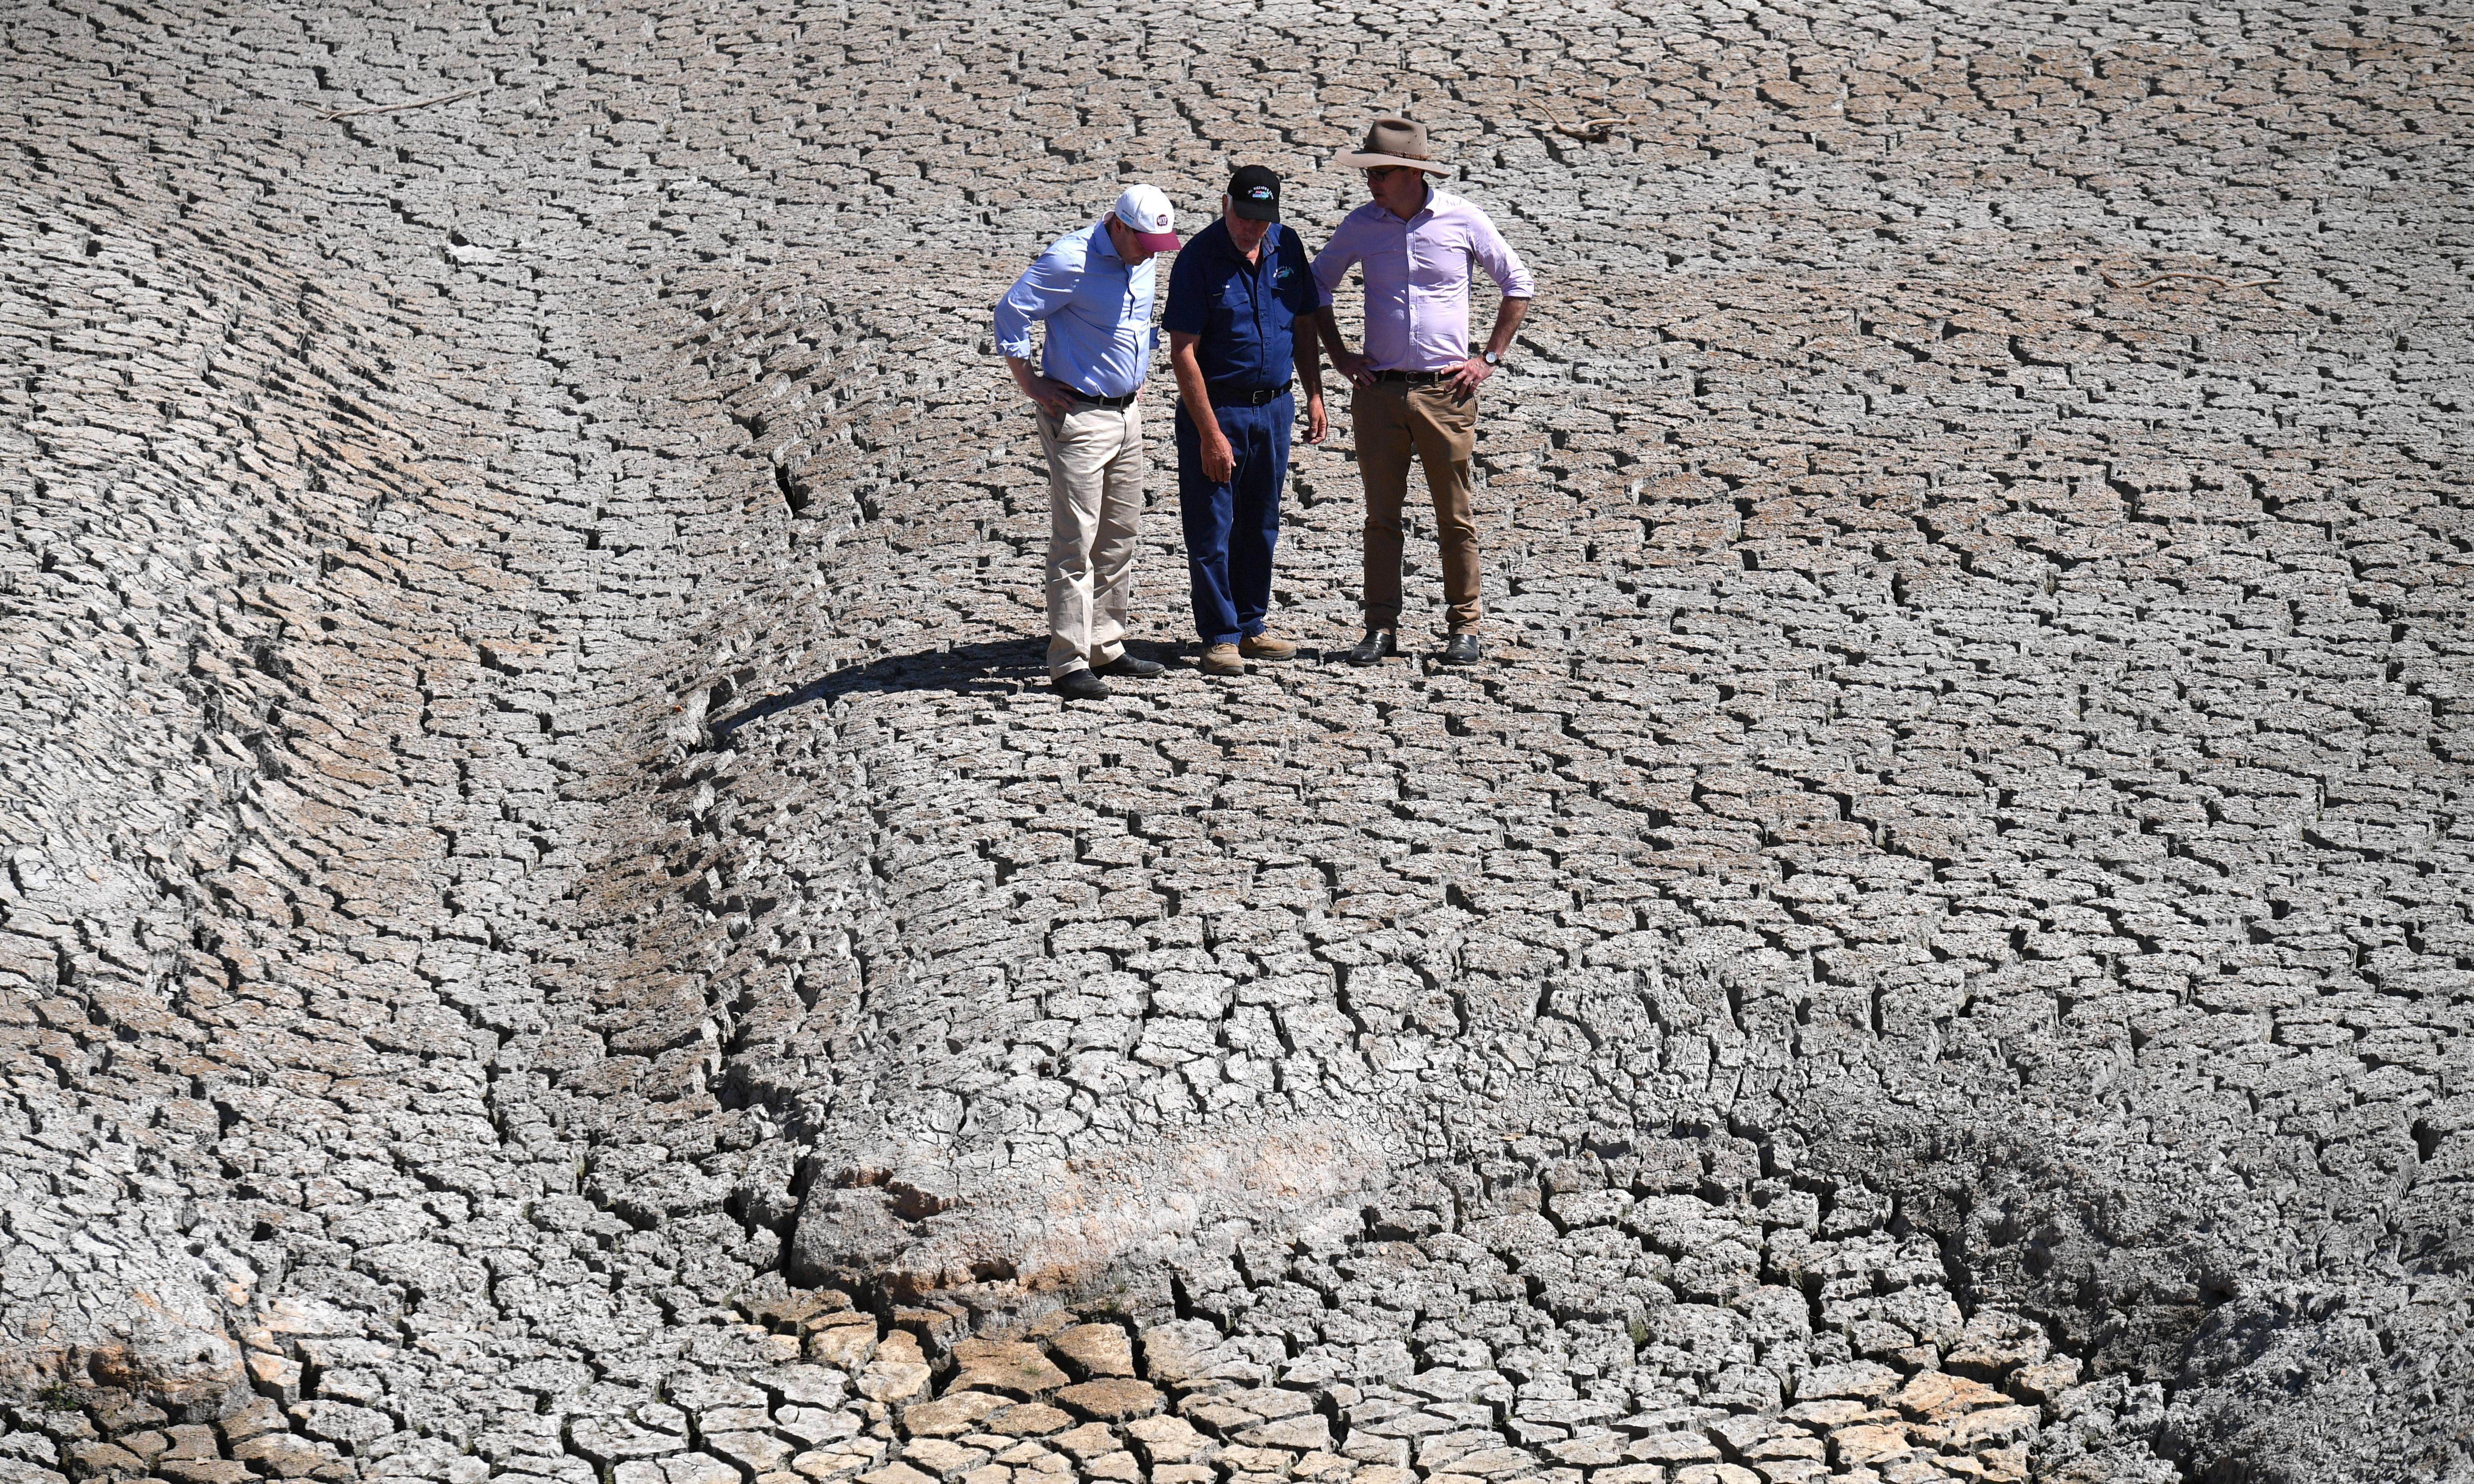 Water resources minister 'totally' accepts drought linked to climate change